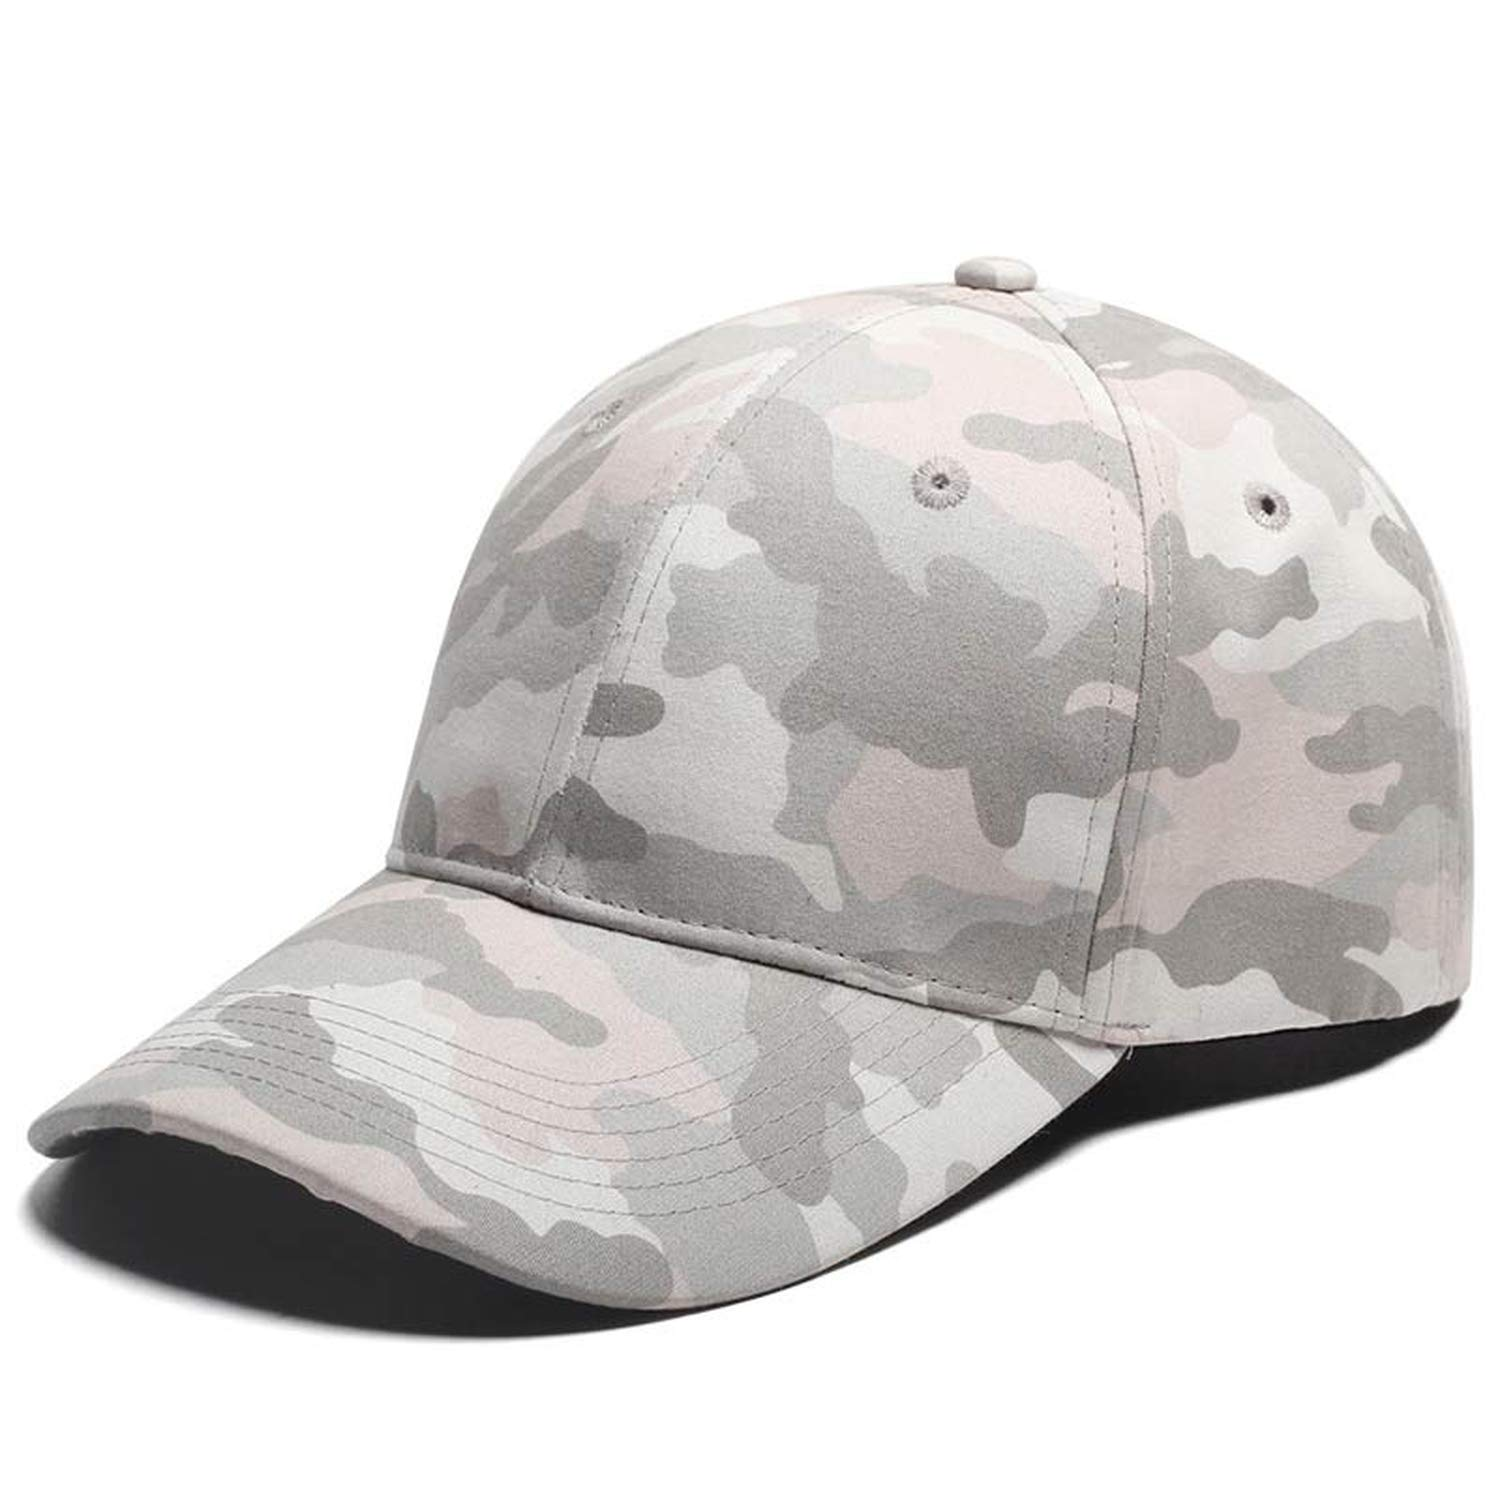 Dreamstar Baseball Cap Men Tactical Cap Camouflage Snapback Hat for Men Bone Dad Hat Trucker Hip Hop